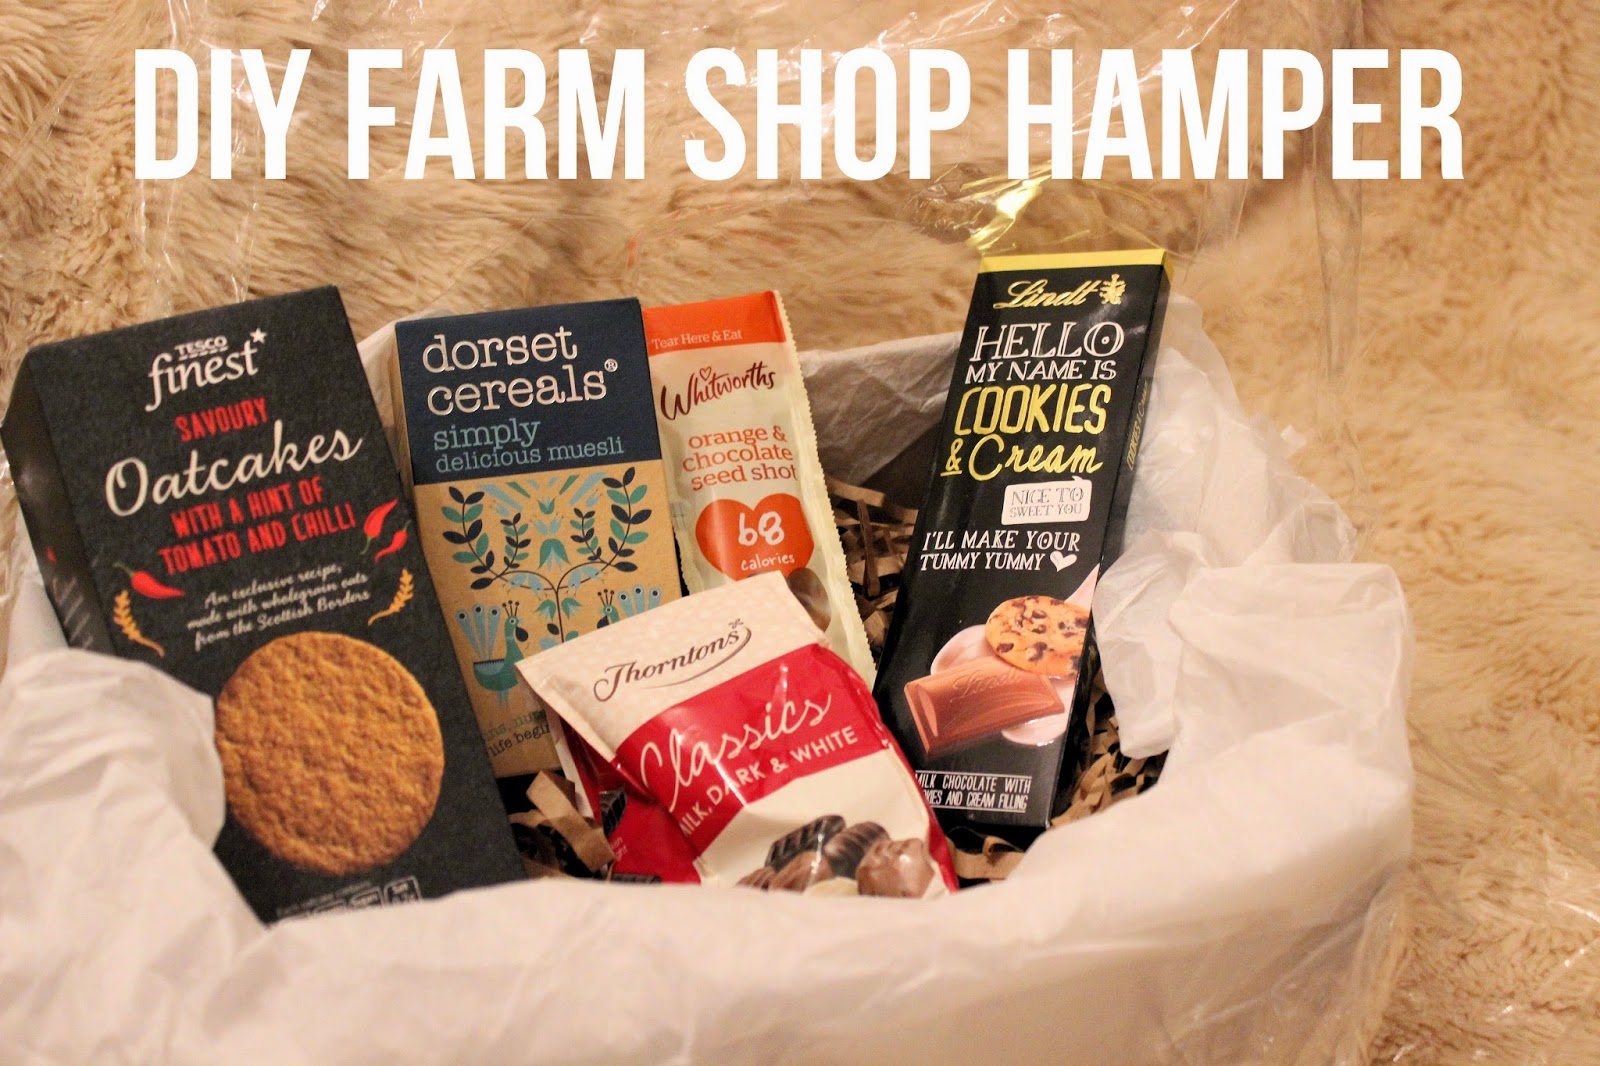 DIY Farm Shop Hamper